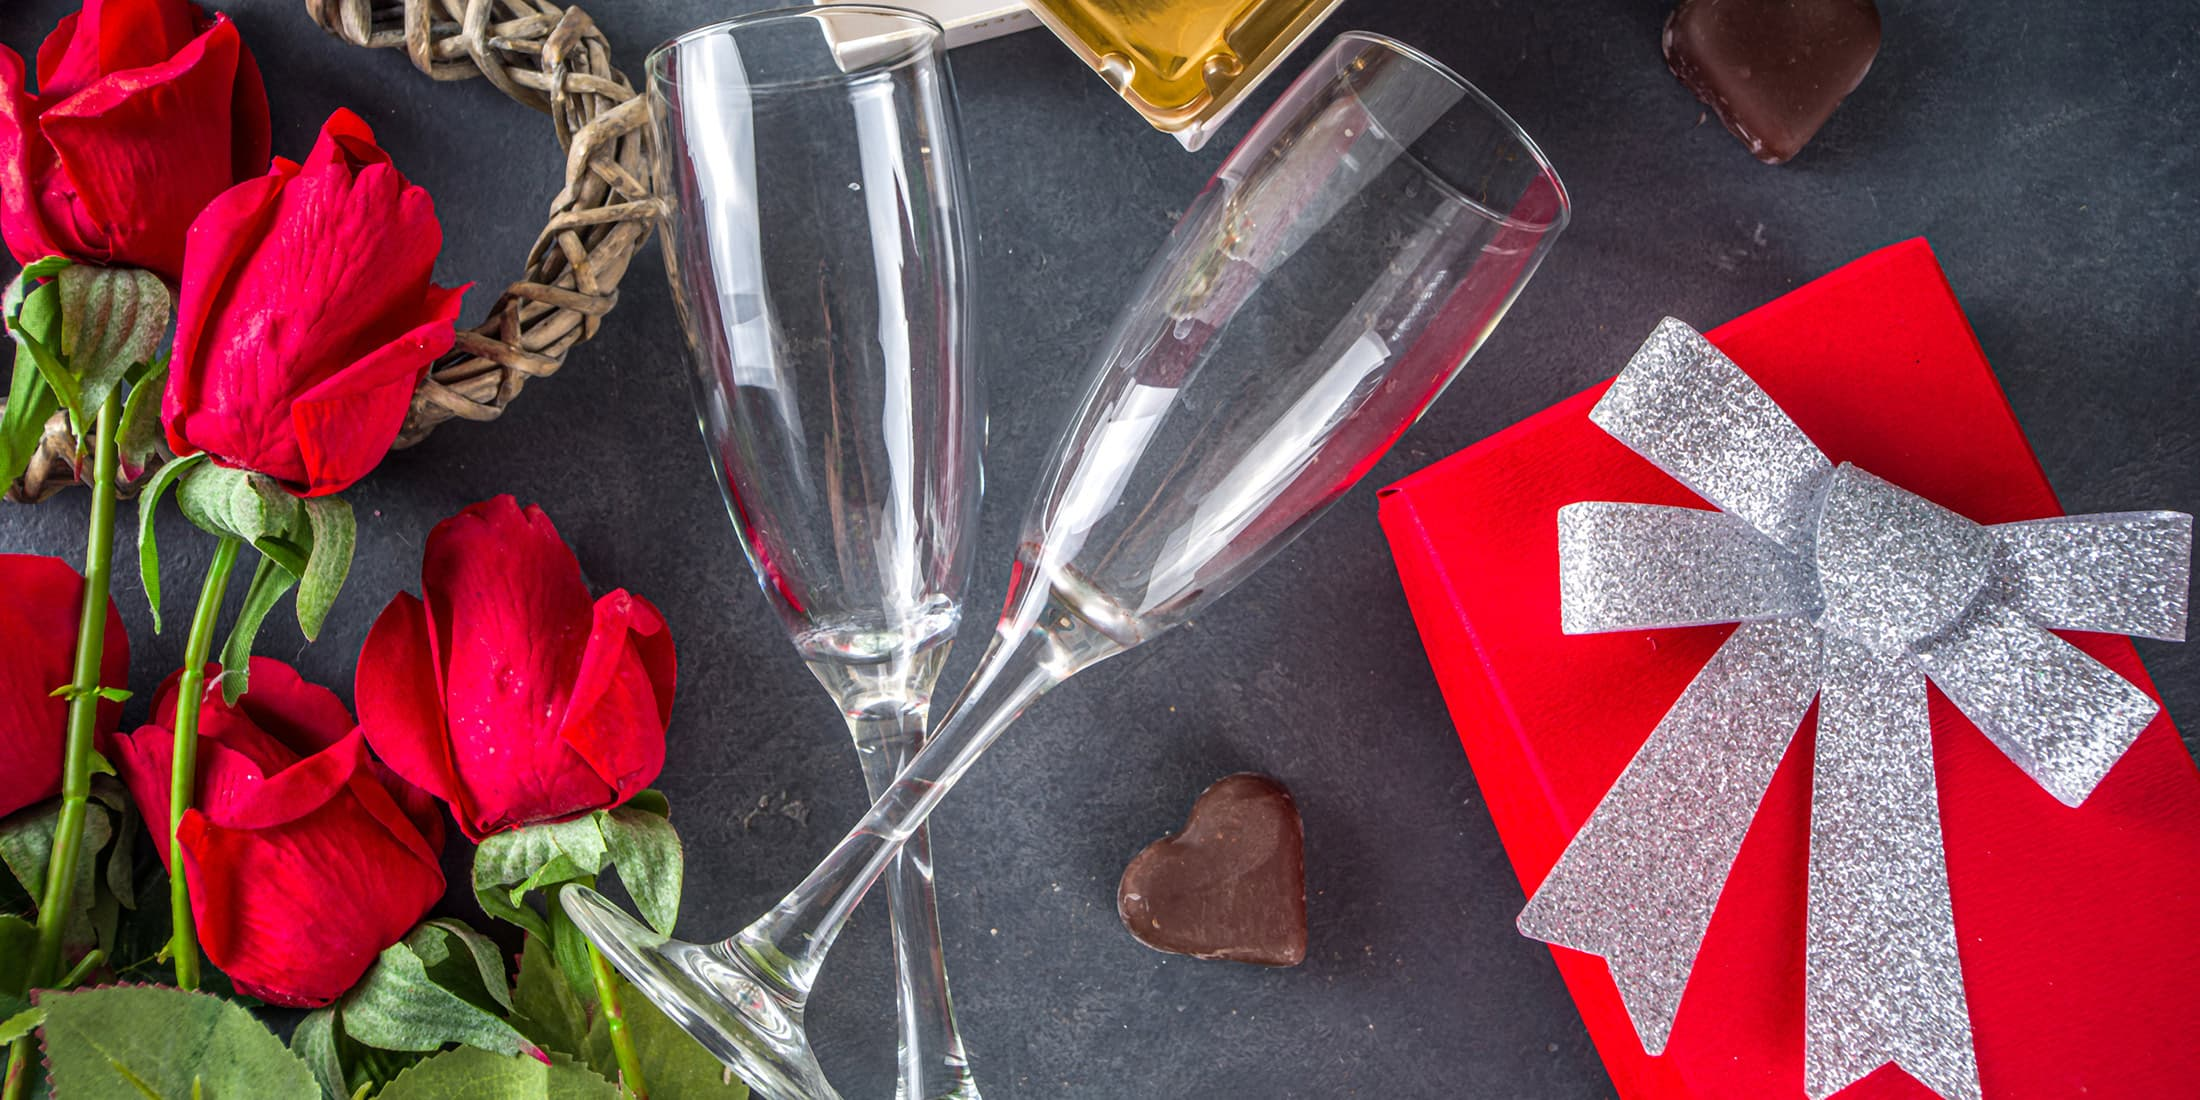 romantic getaway package with roses and wine glasses